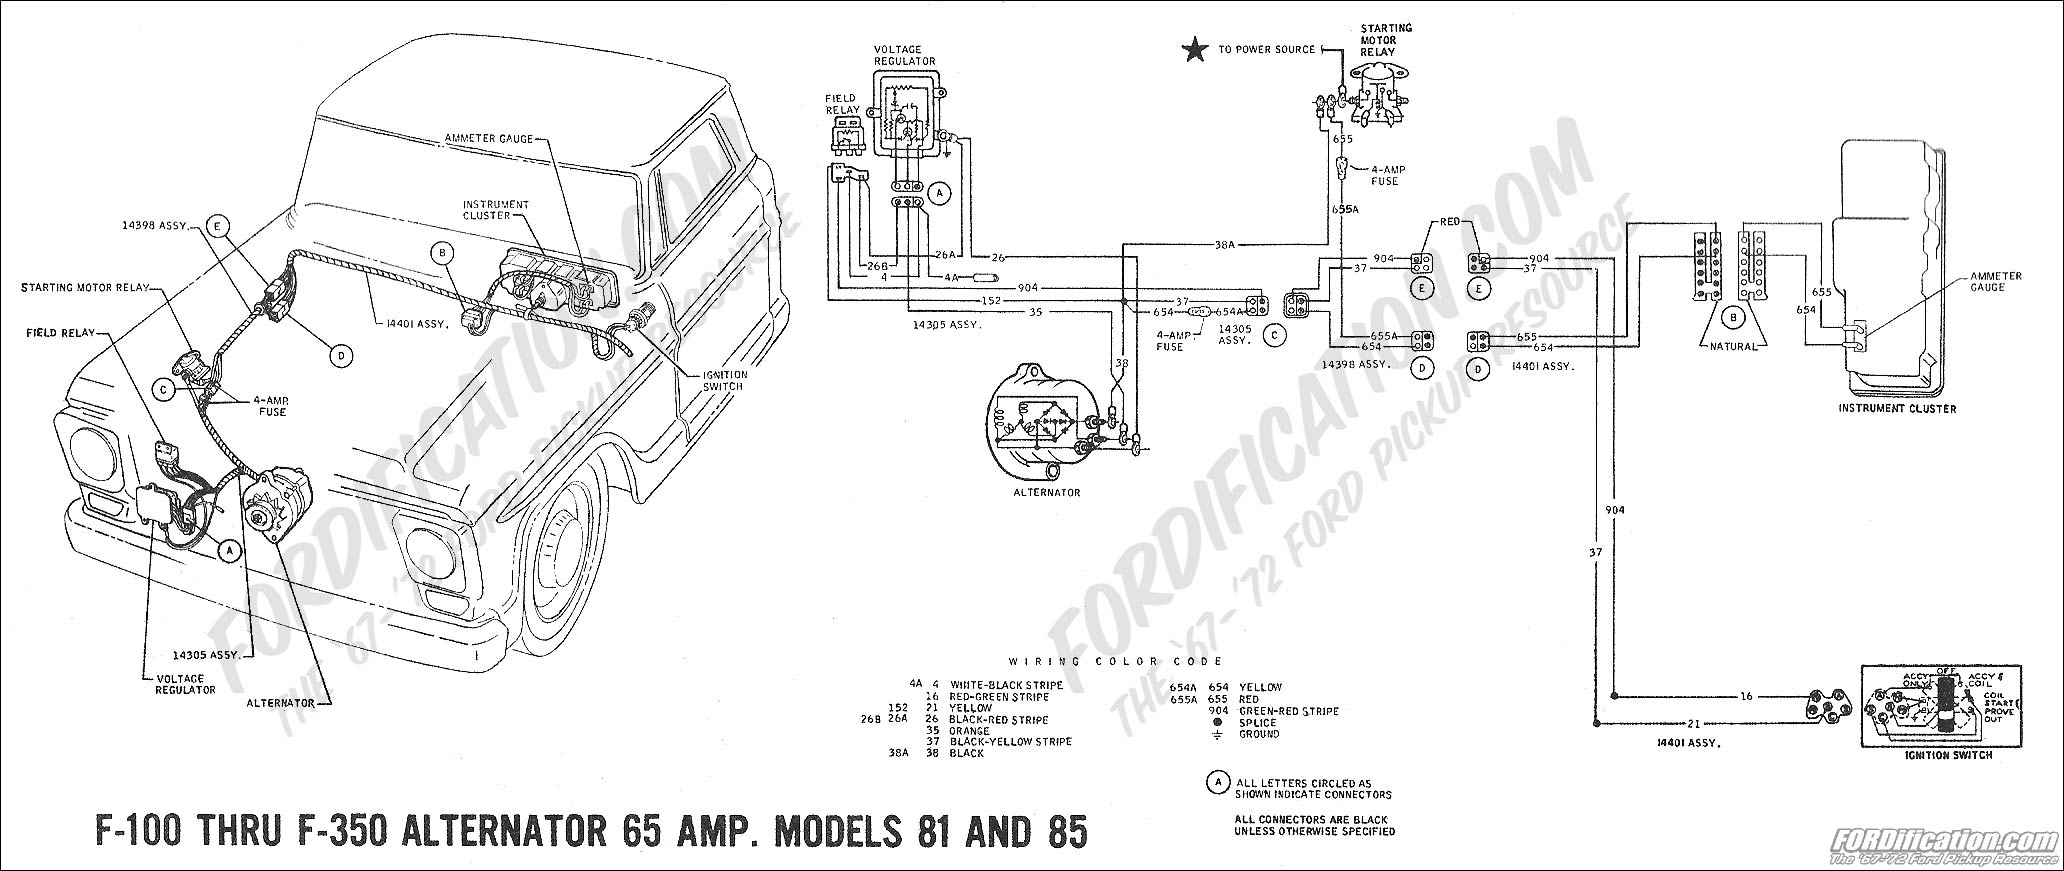 wiring diagram for 1977 ford f150 the wiring diagram ford truck technical drawings and schematics section h wiring wiring diagram